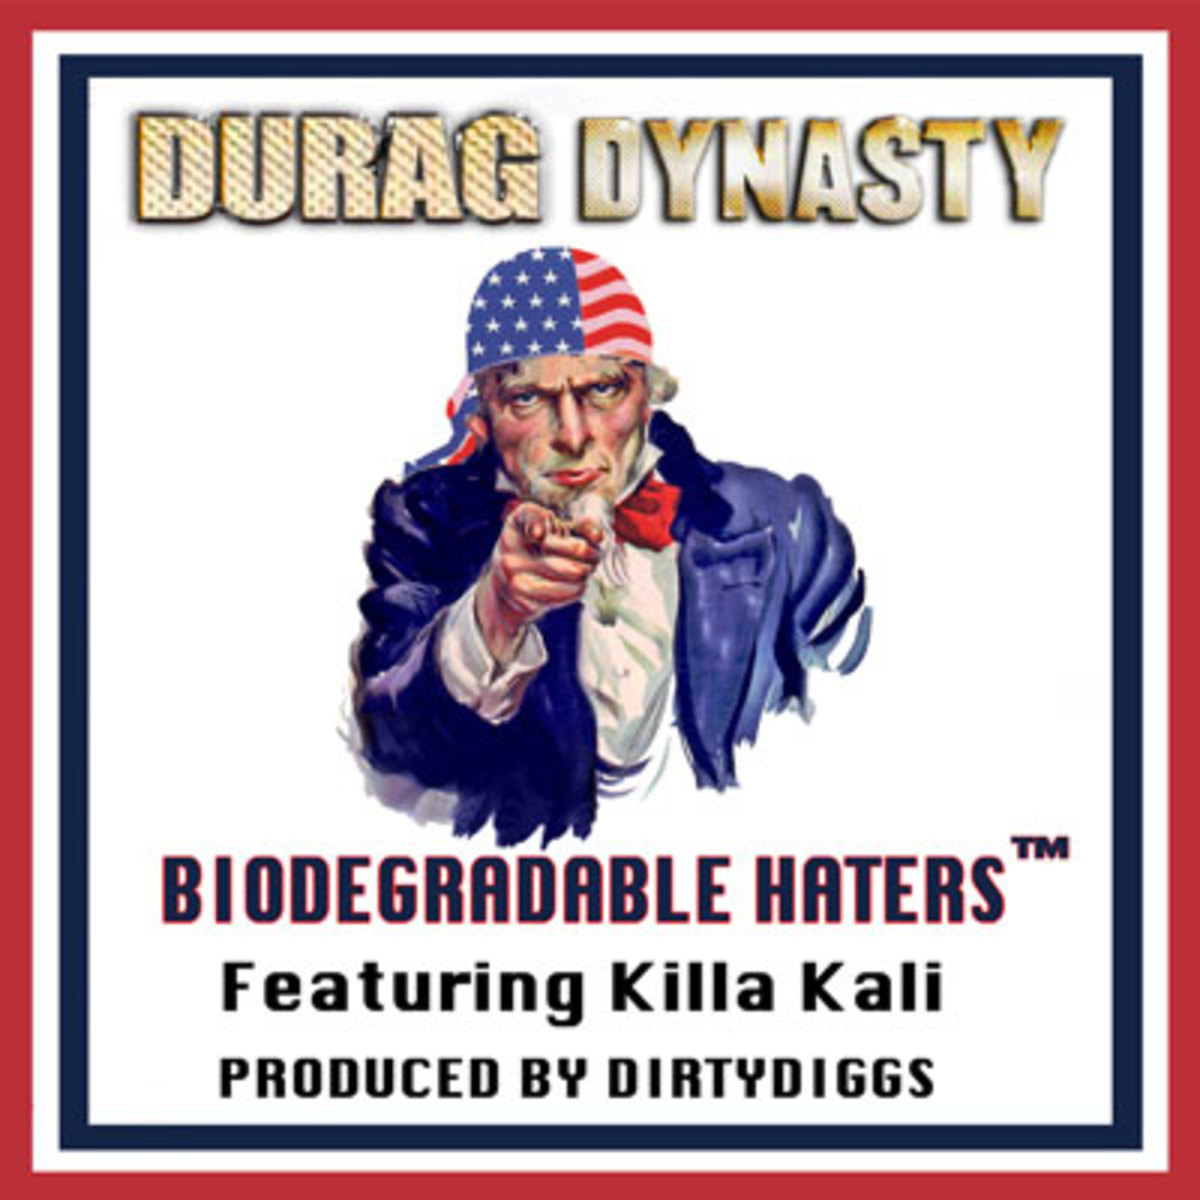 duragdynasty-biodegradablehaters.jpg